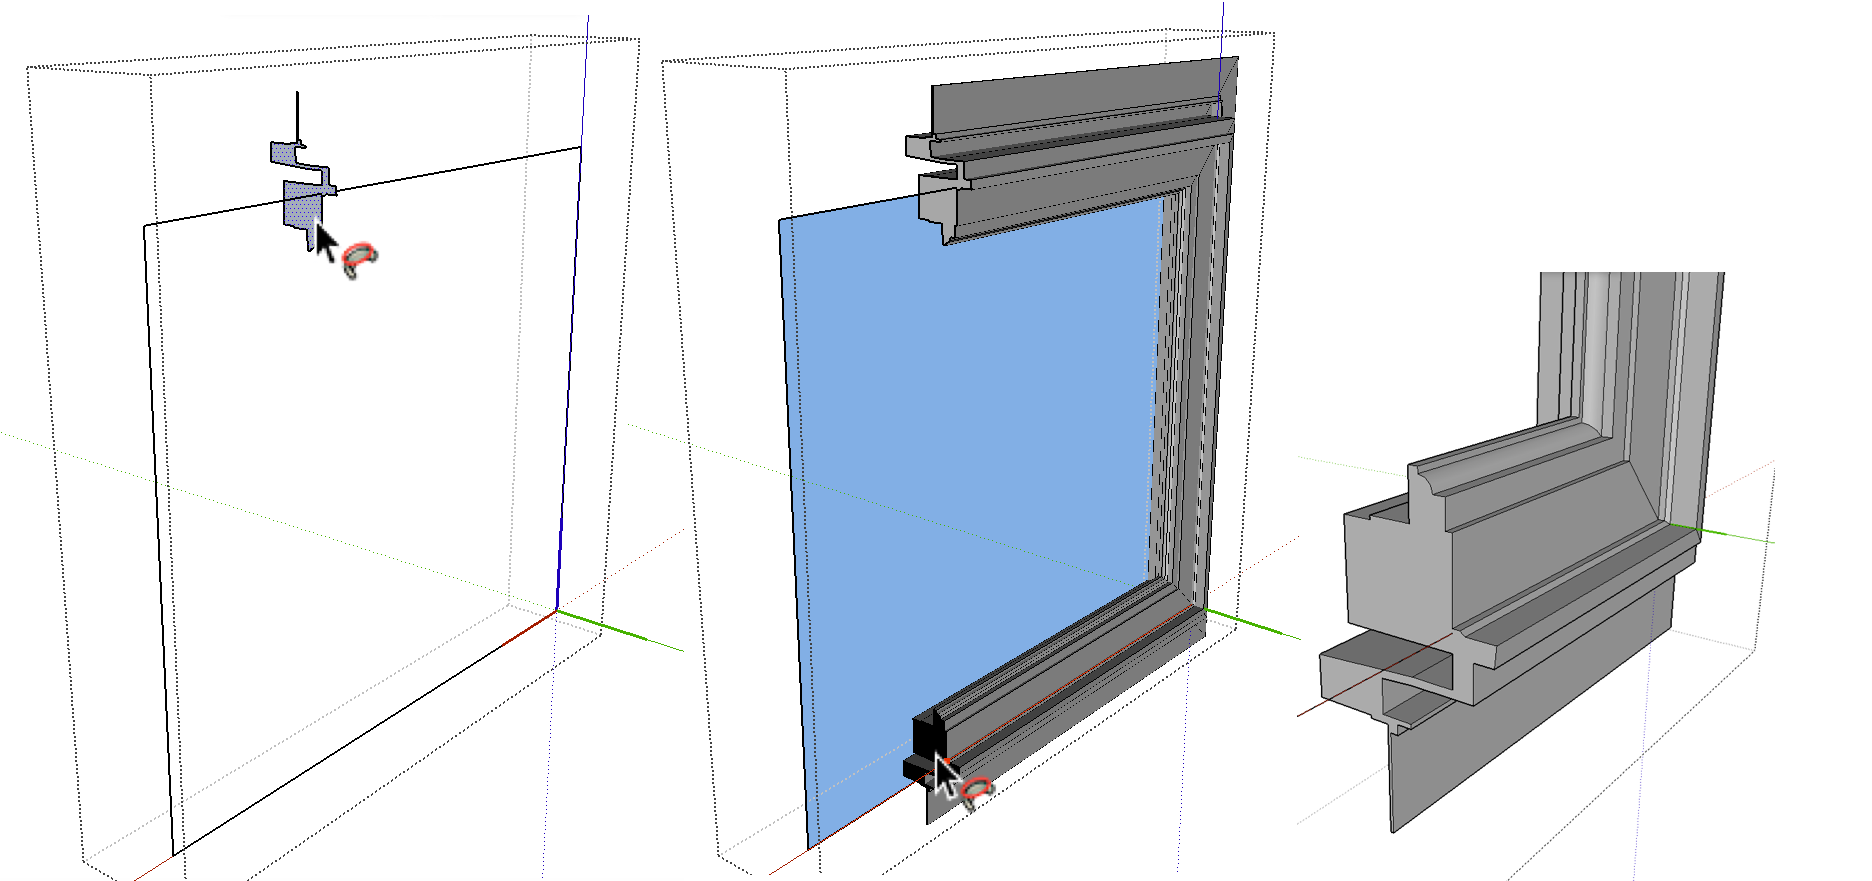 Sketchup drawing practice, Picture #1182277 sketchup drawing practice